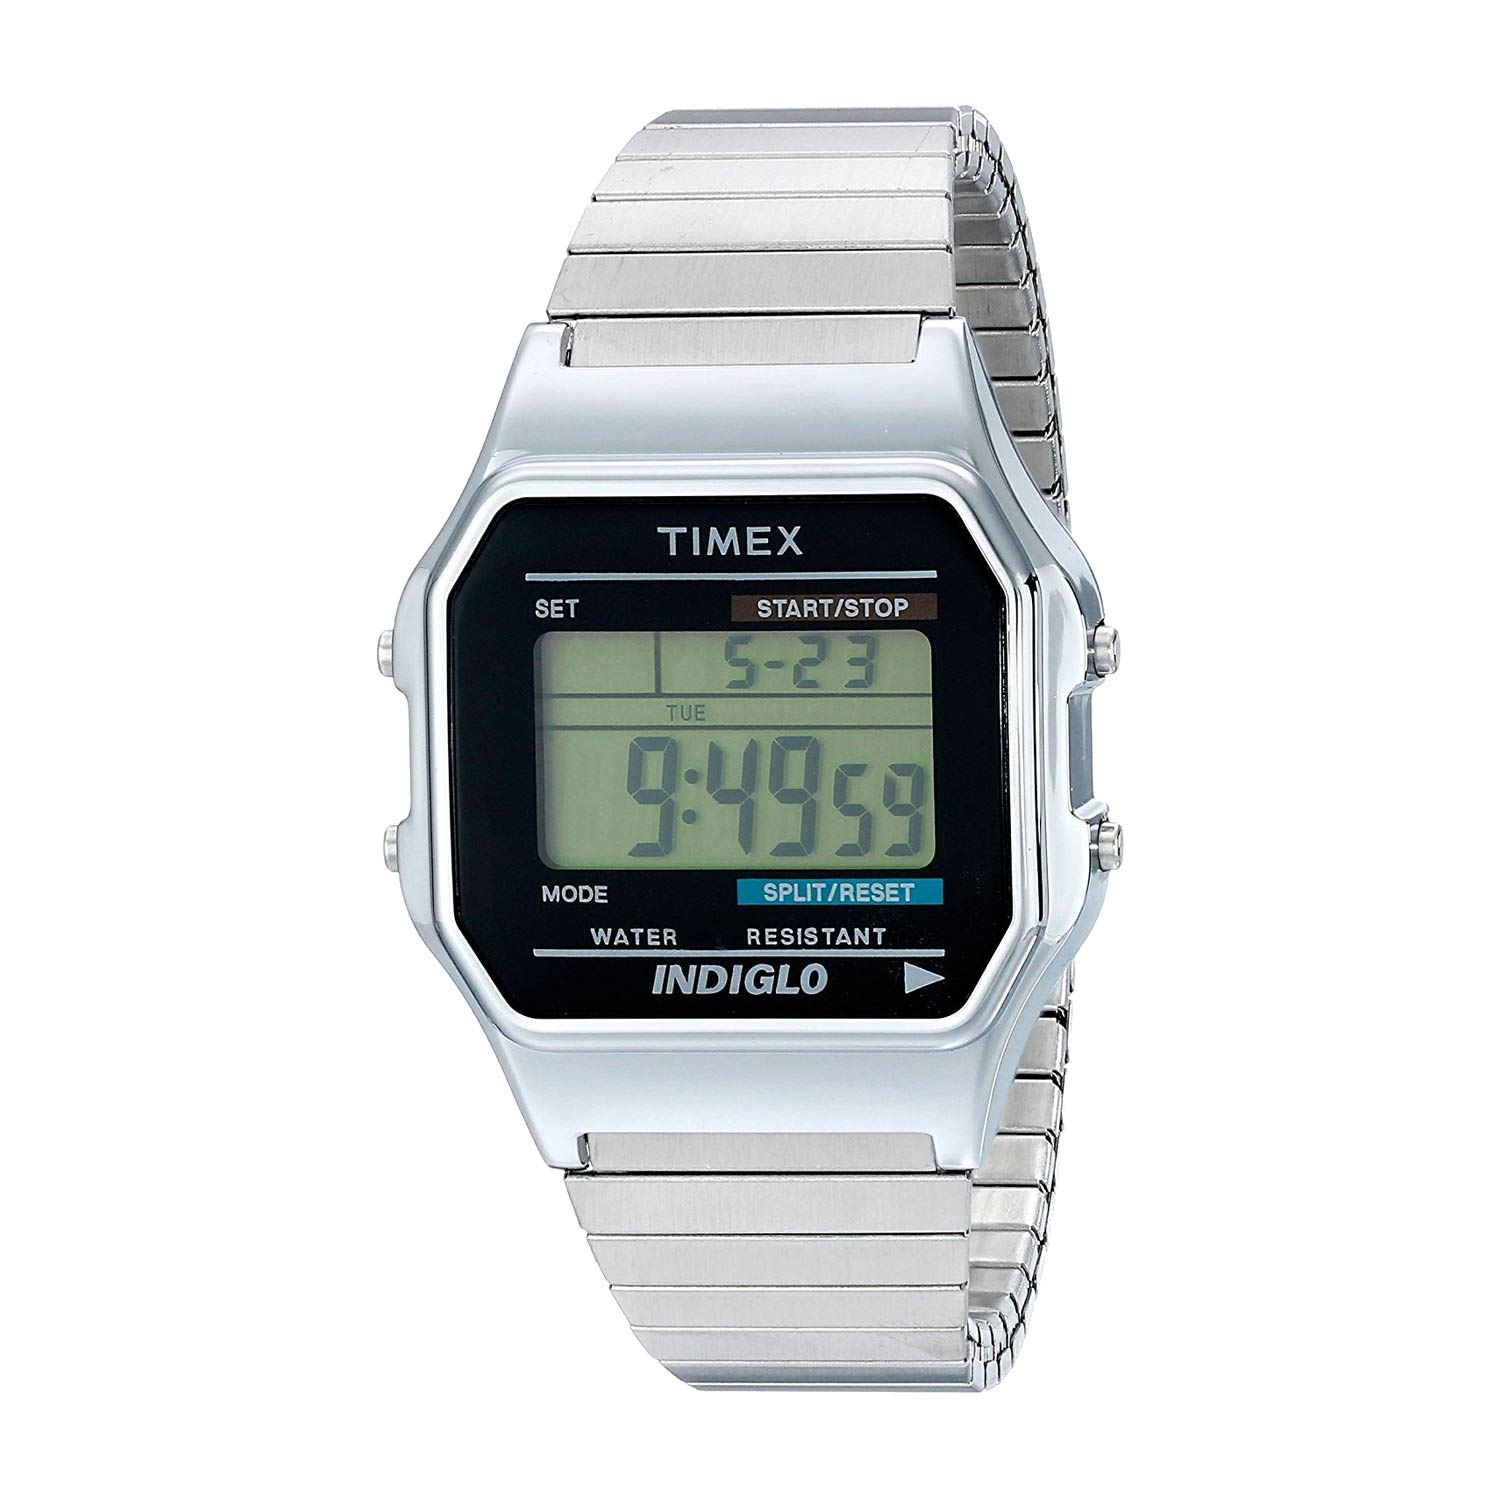 Timex Core Digital T78587 Retro Herrenuhr Im 80er Jahre Design